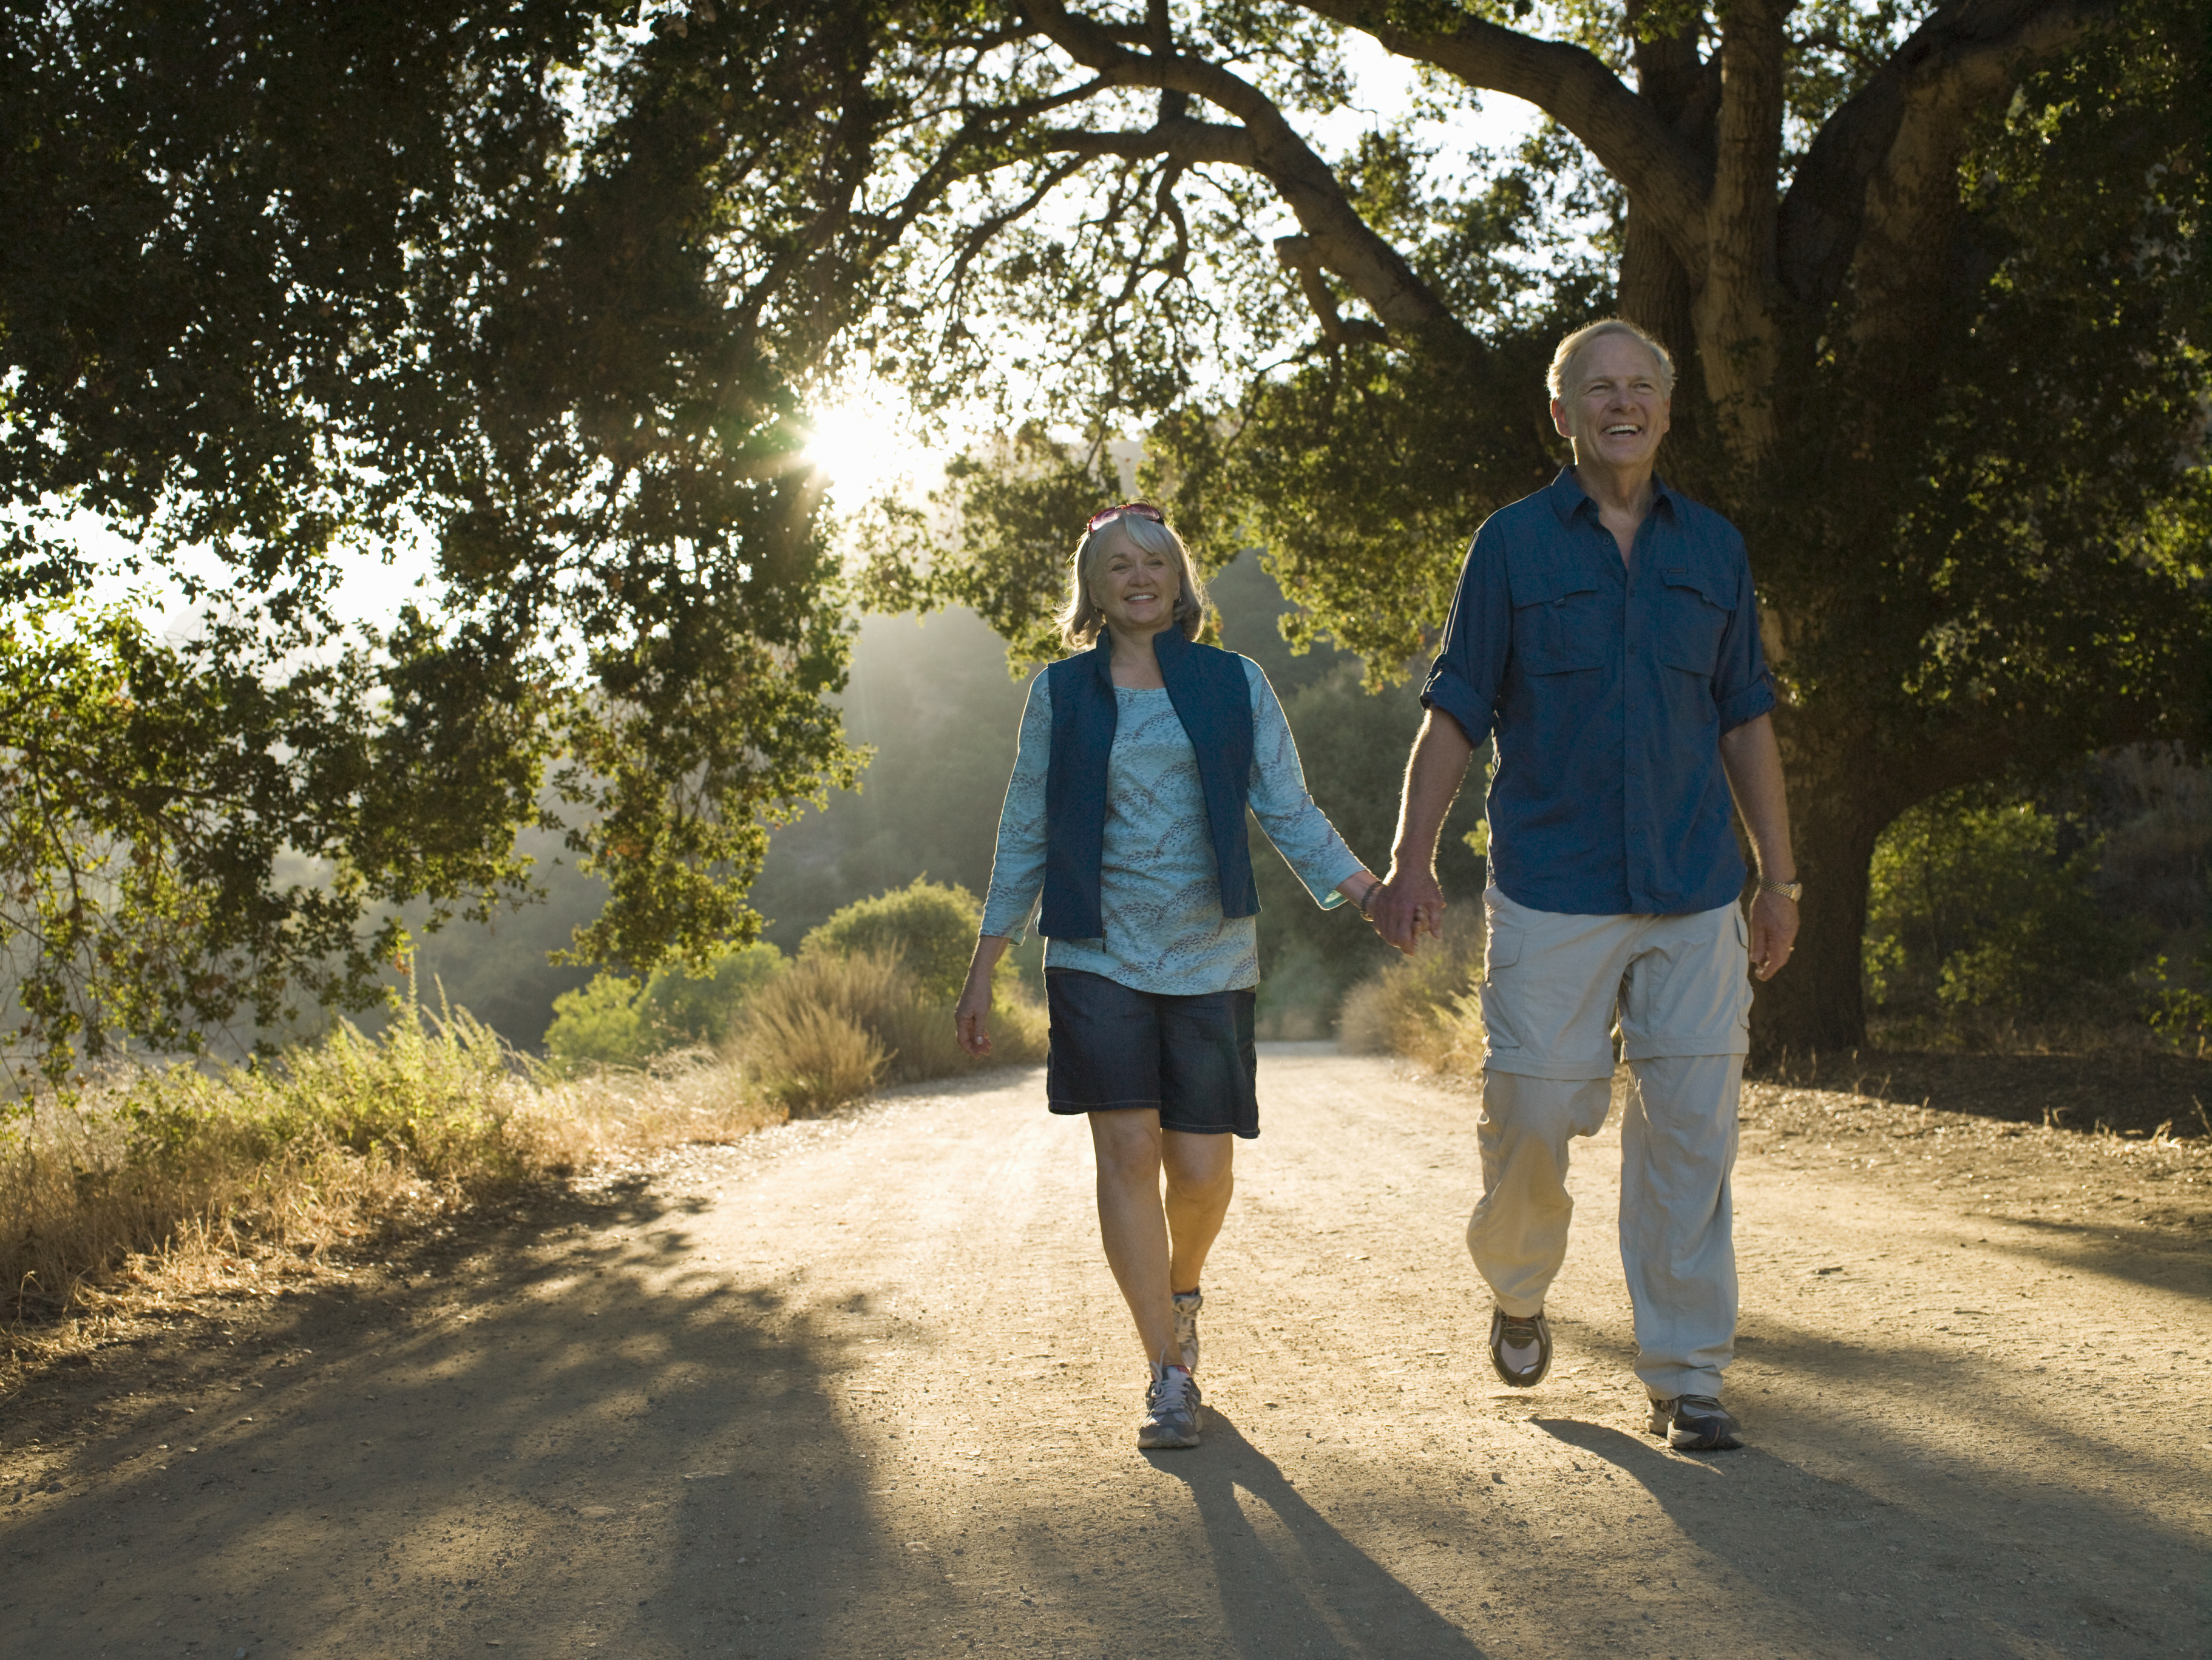 Renew Your Spirit With Senior Friendly Parks